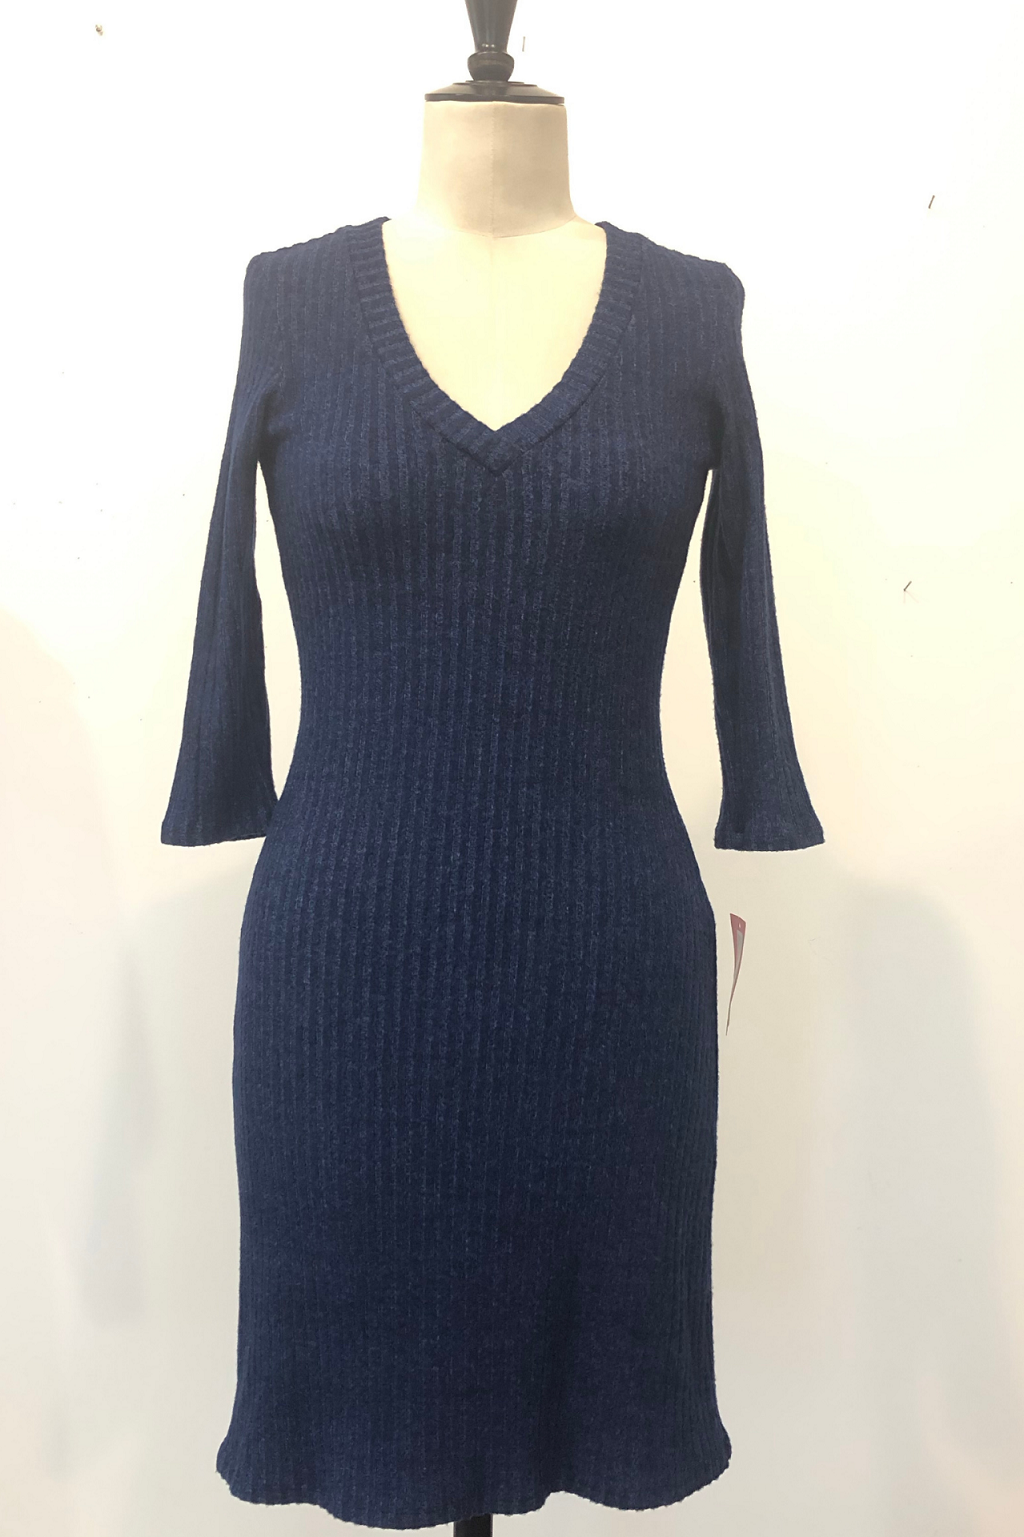 KOKOON Long Tall Sally DRess in Navy Poorboy Sweater Rib